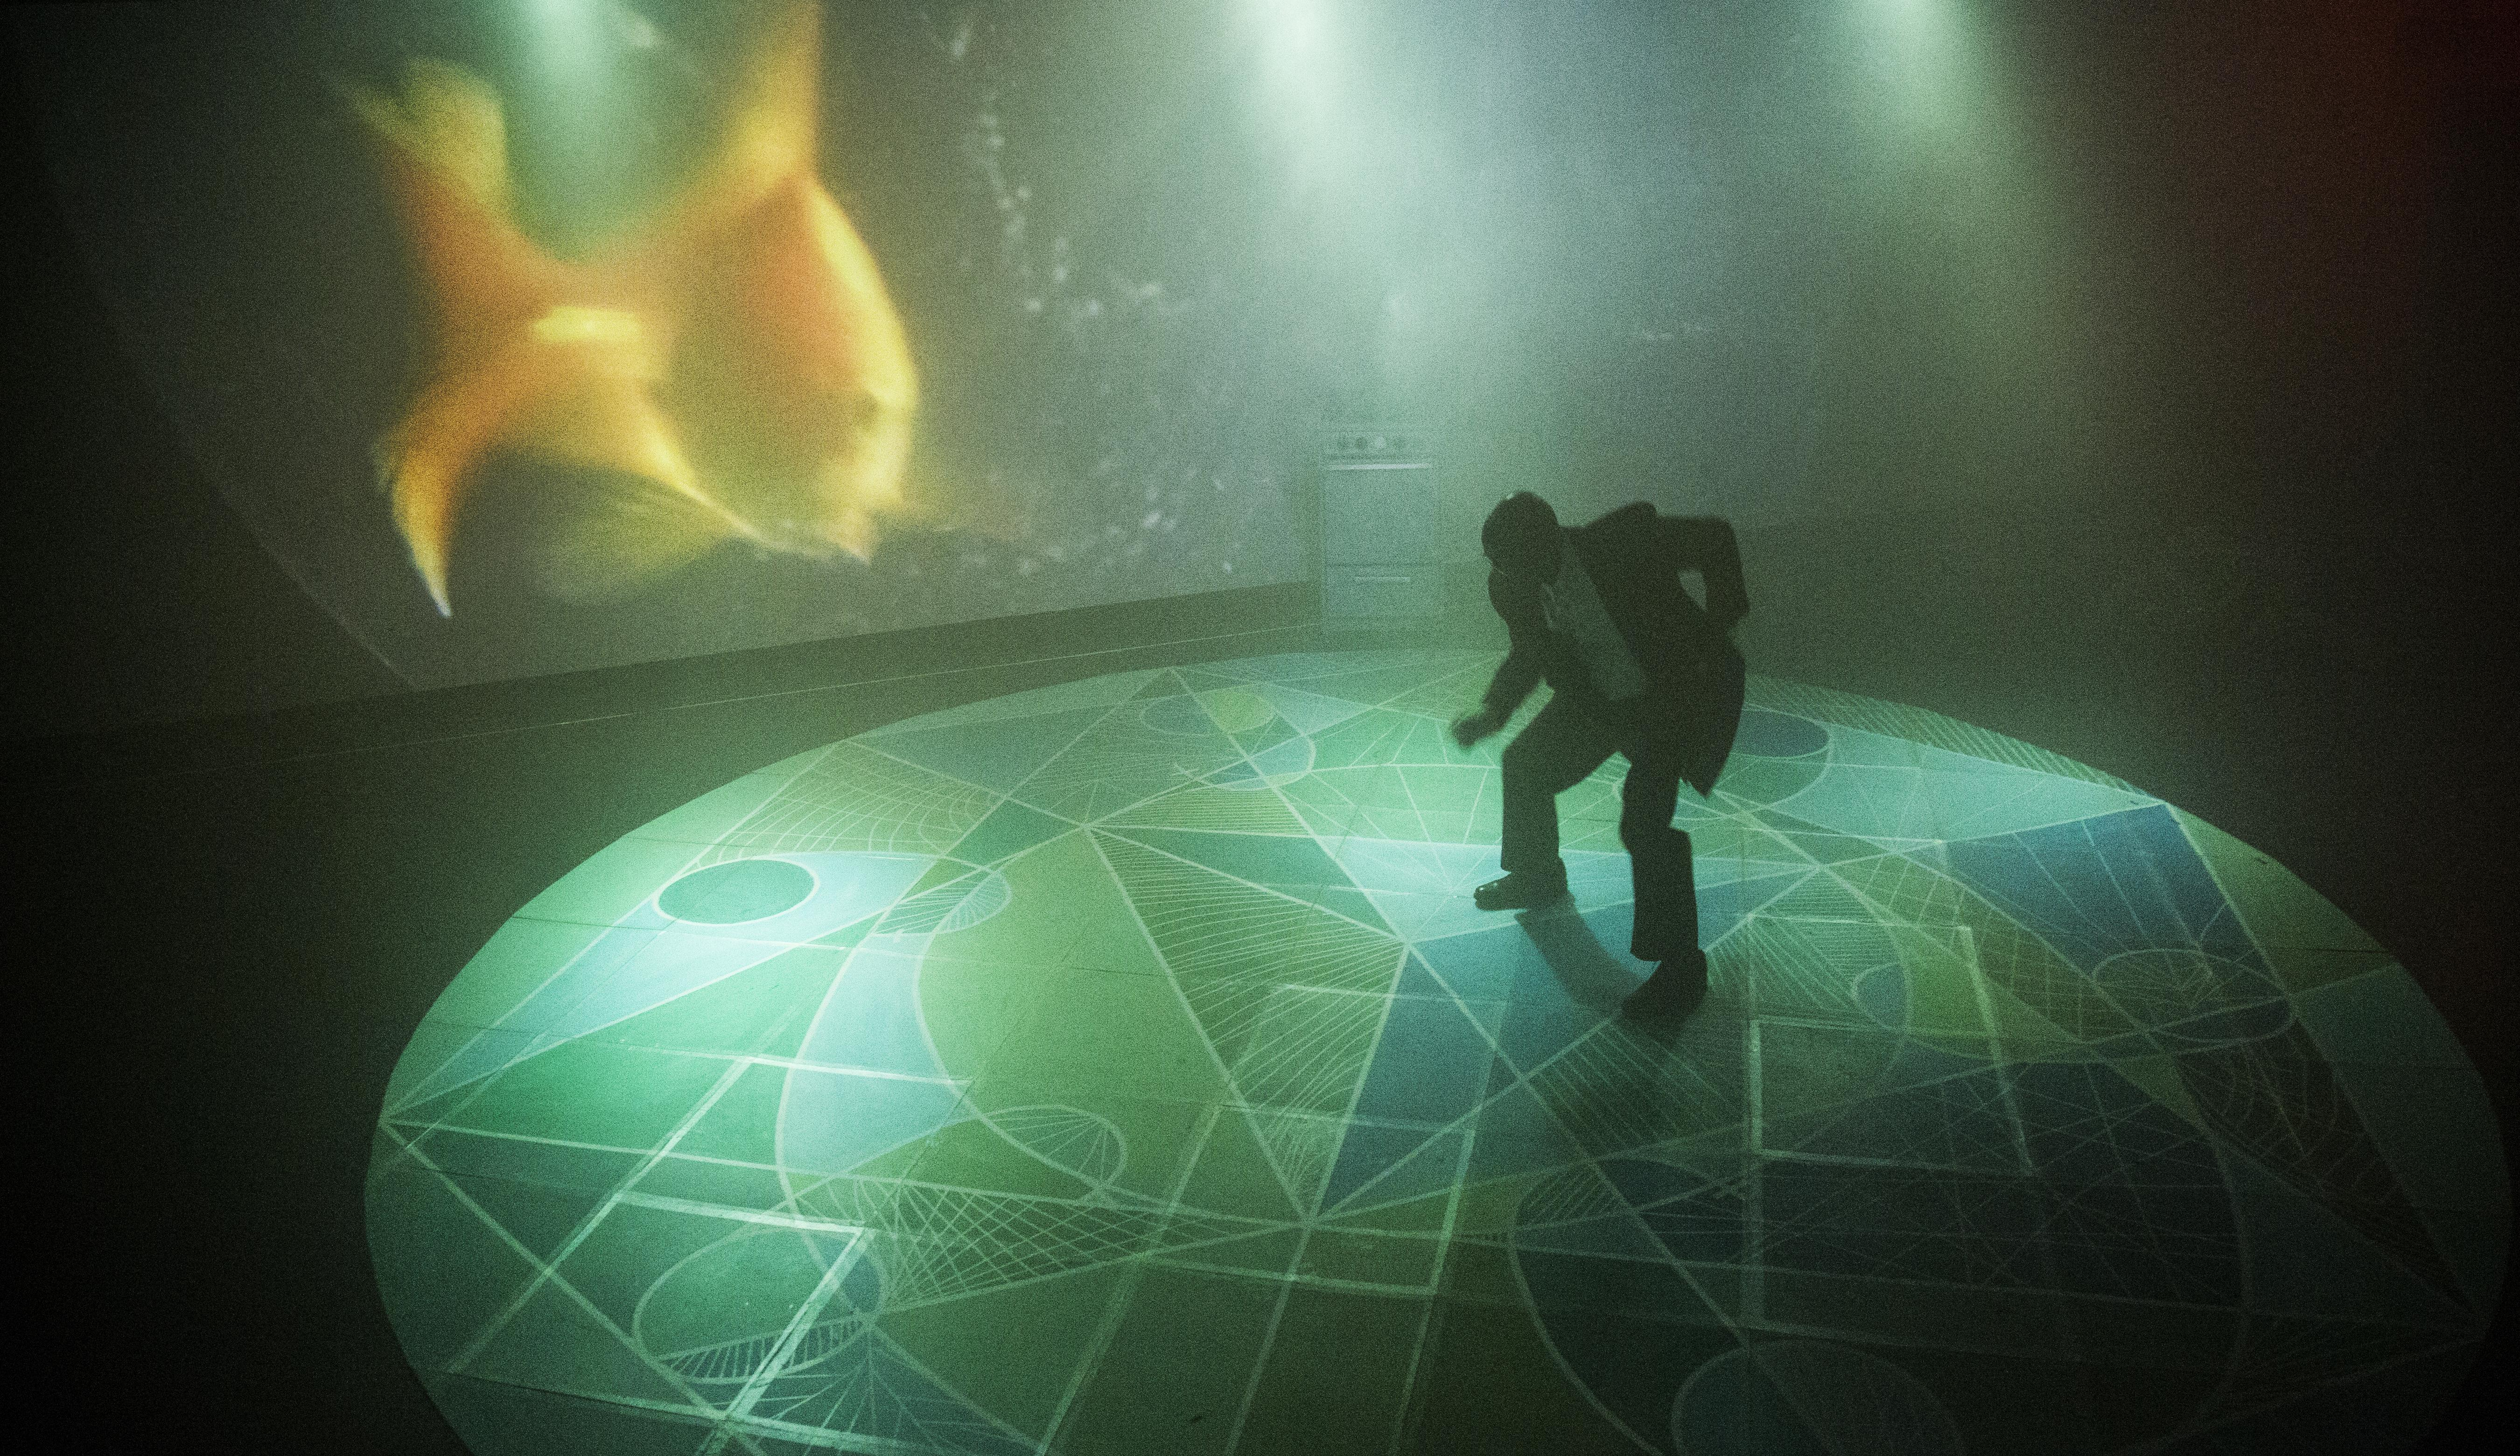 A man in a businesslike suit crouches as if dancing on an illuminated stage. The floor beneath him features an intricate pattern of various greens, while the screen behind him shows a blurry projection of a goldfish.